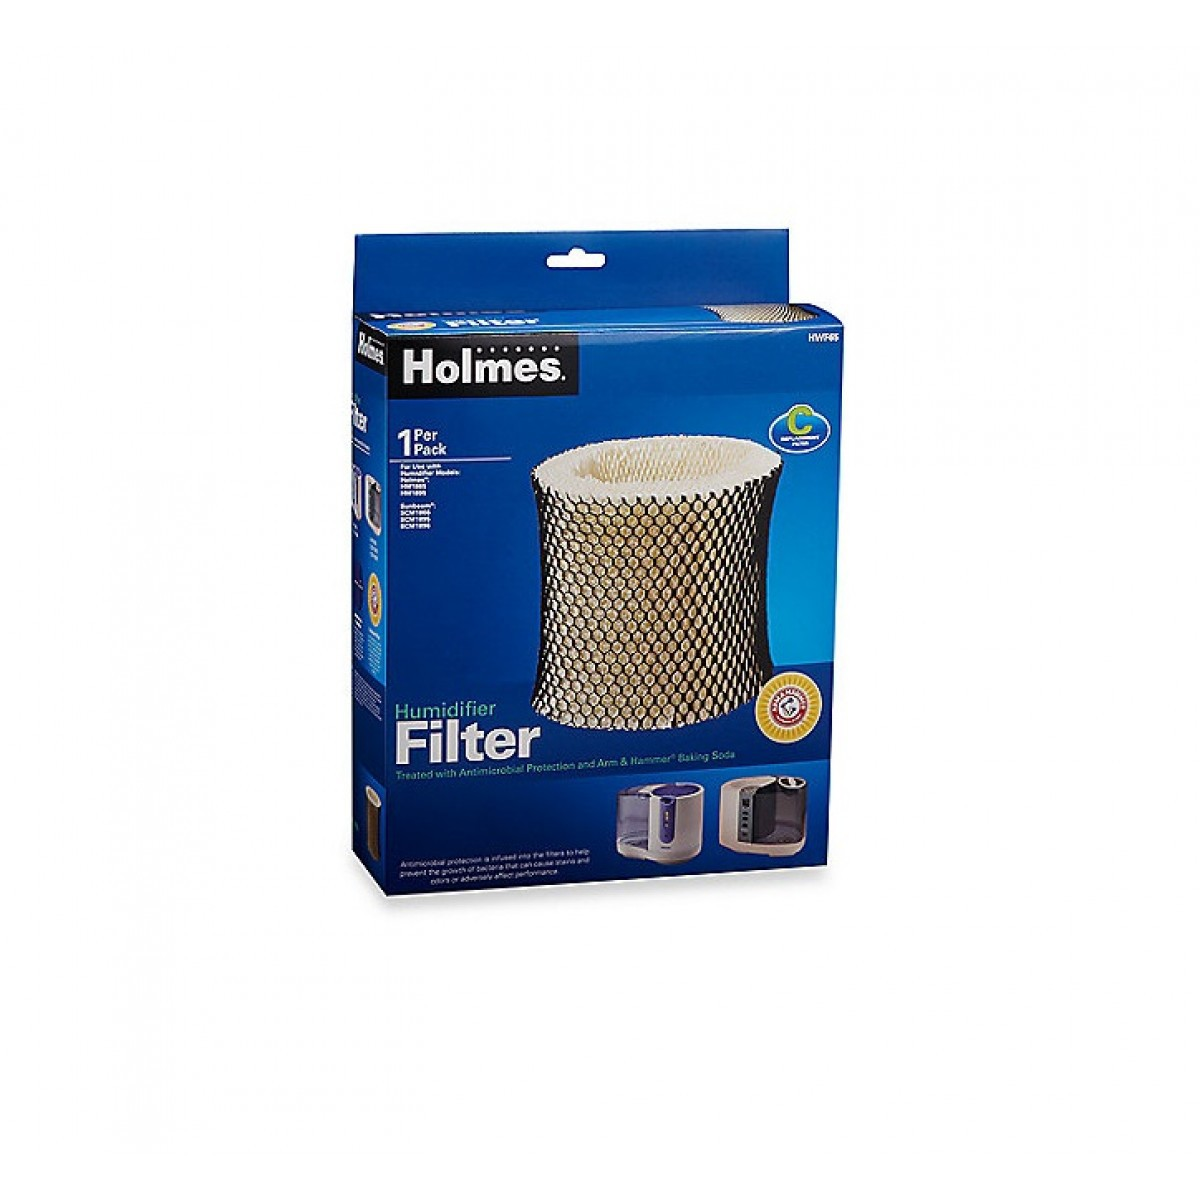 Holmes HWF65PDQ U Humidifier Wick Filter 'C' DiscountFilterStore.com #07397F